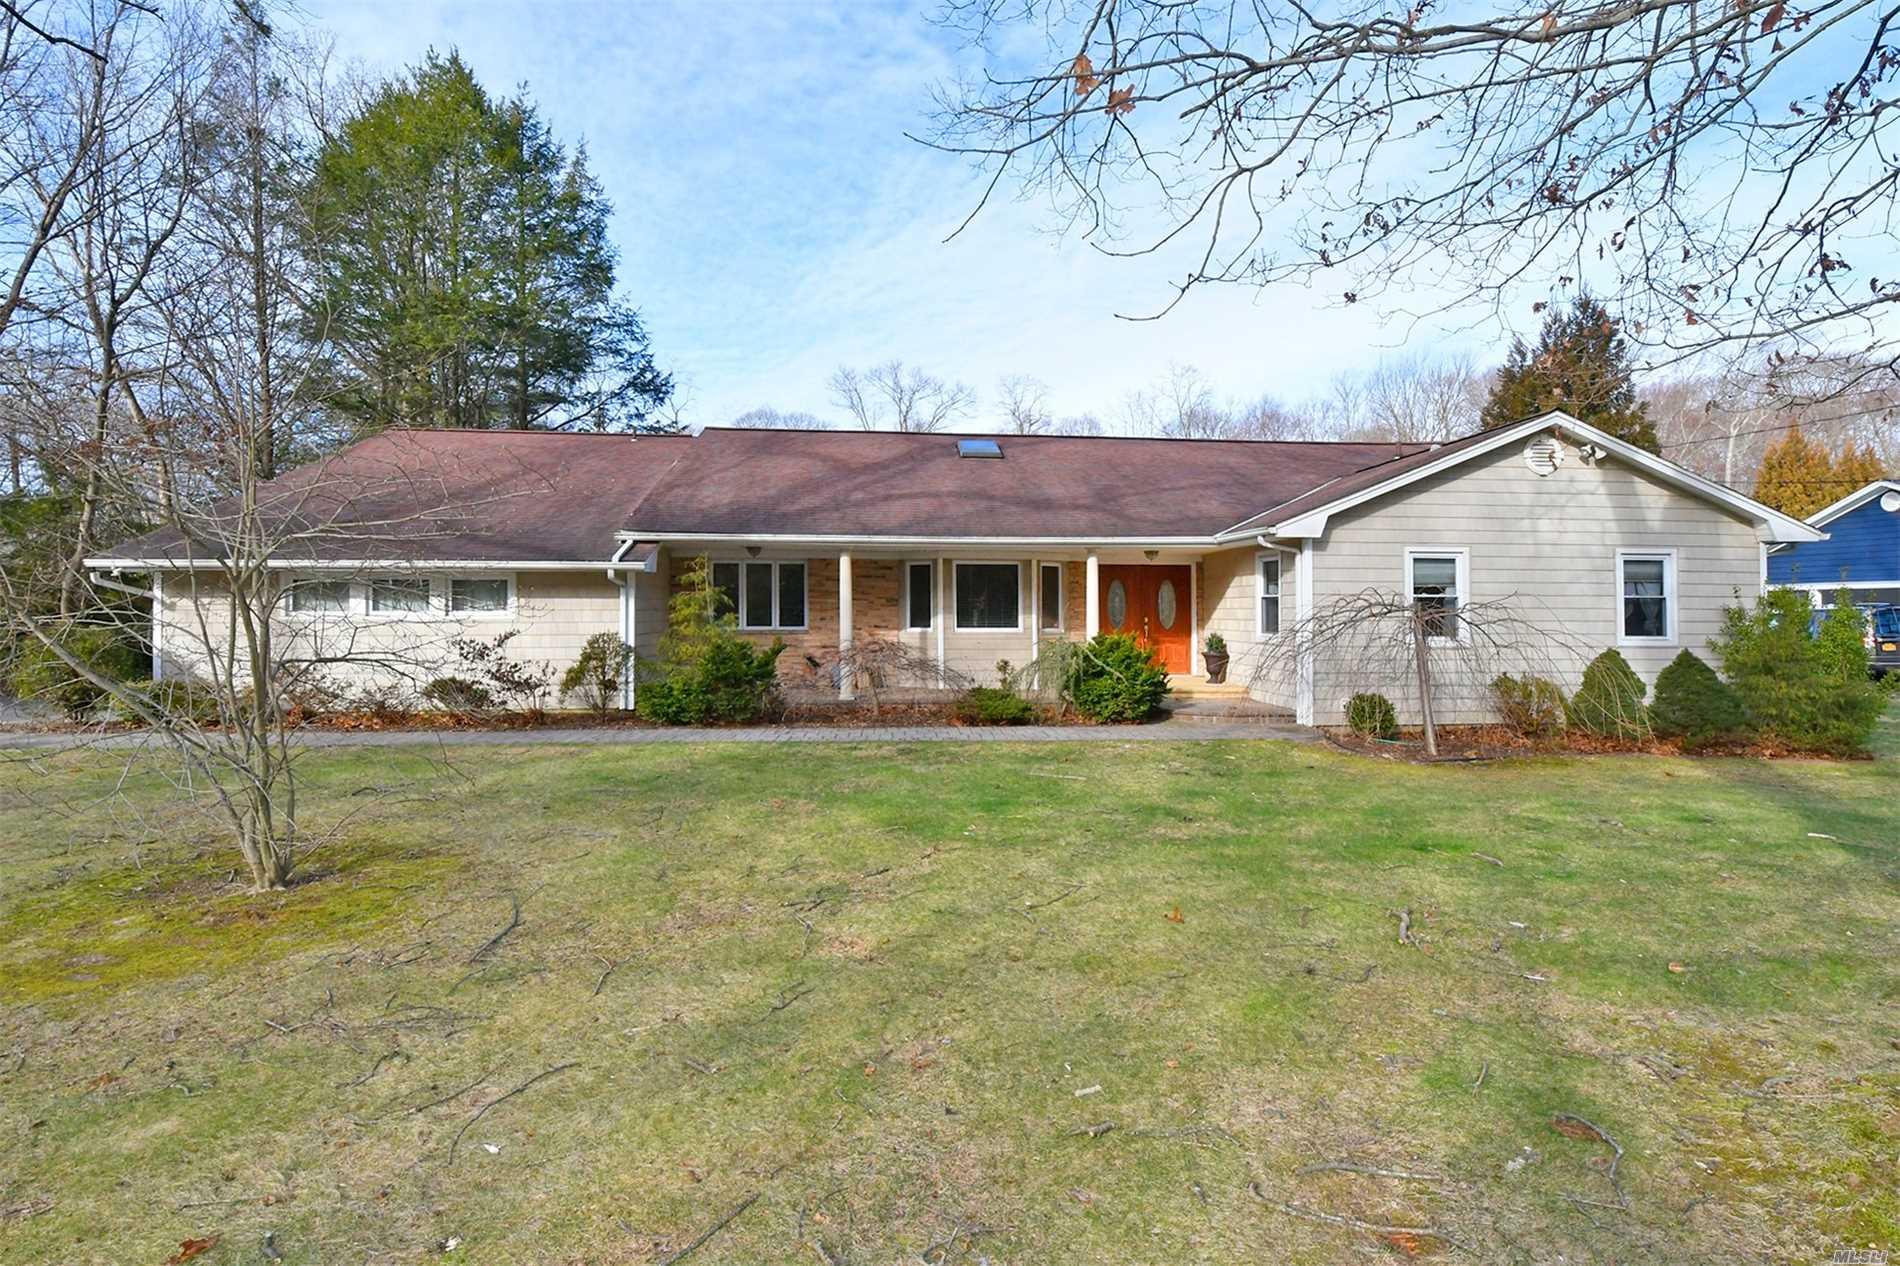 Low Low Taxes And Parklike Flat Acre! With Igp In Mid Block Location !!! Updated 4 Br. 3.5 Fbth Ranch Set On Flat Acre W/Igp. Updated Kitchen W/ Wood Cabinetry And Granite Counters. Updated Baths,  Boiler Updated Approx 3 Yrs,  A Must See! Won't Last!